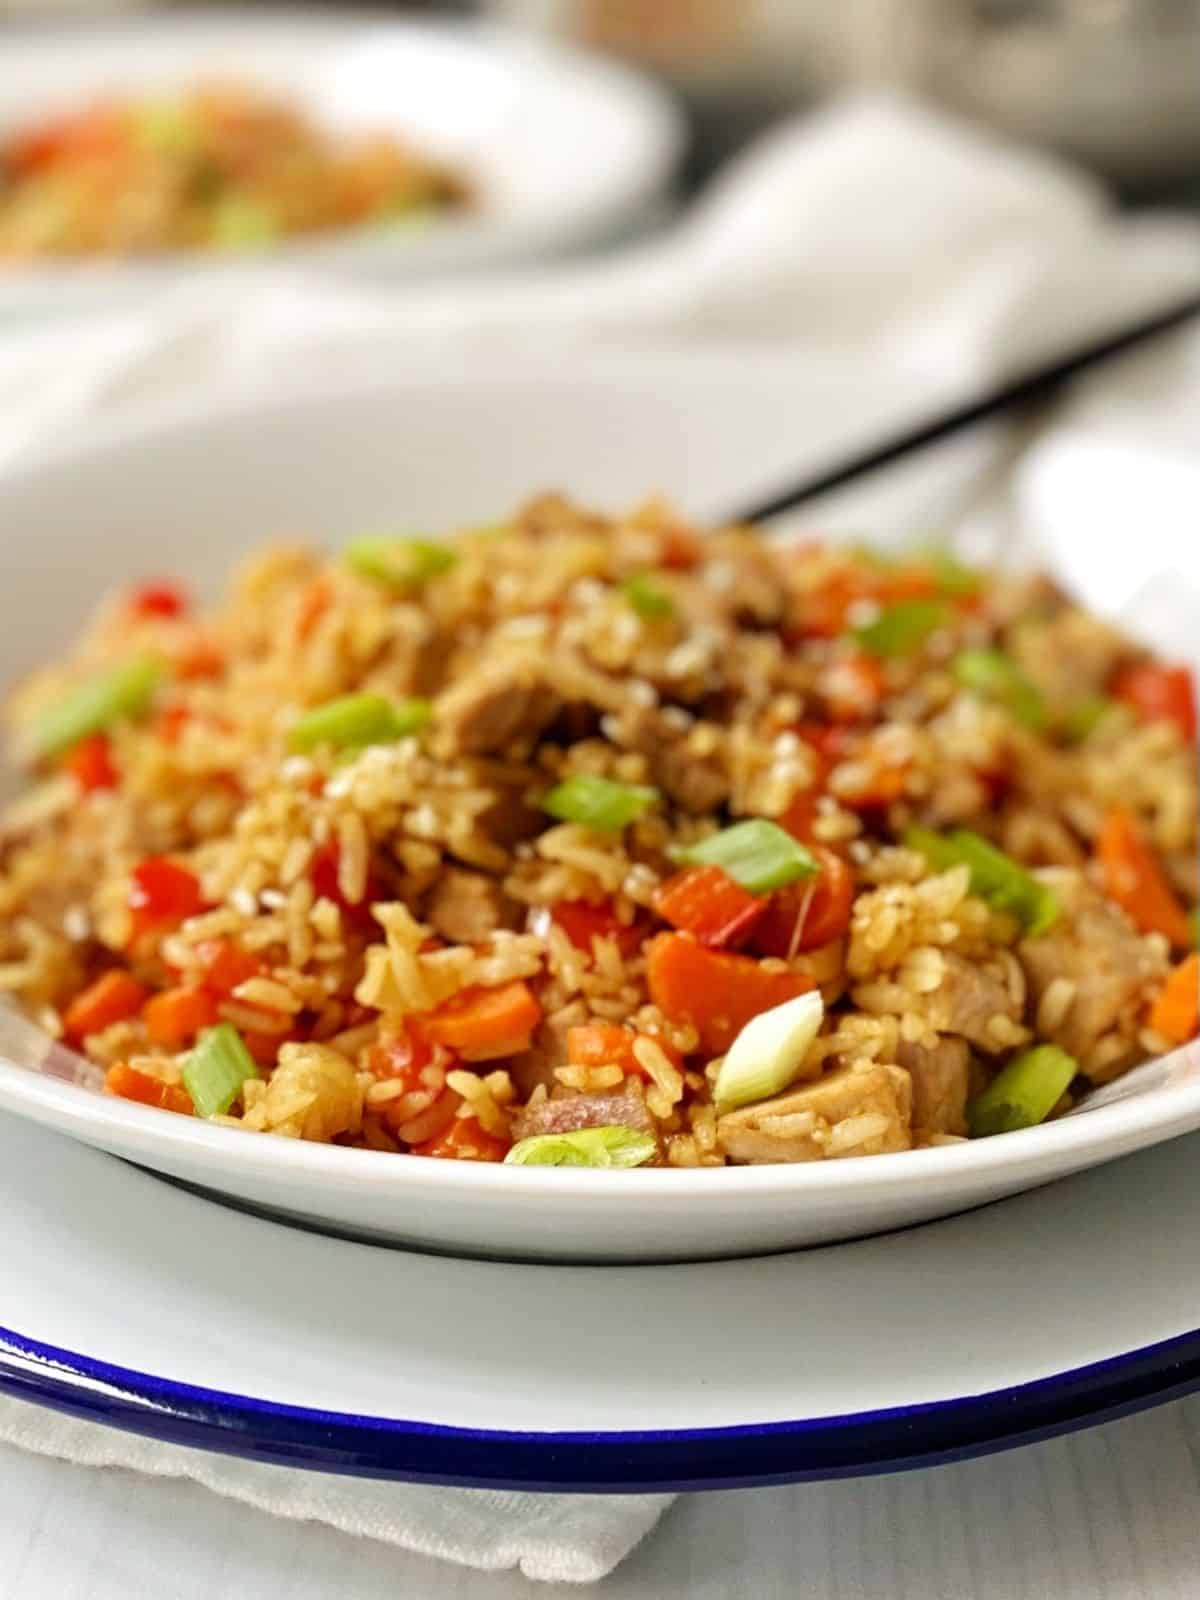 close up side view of bowl of pork fried rice